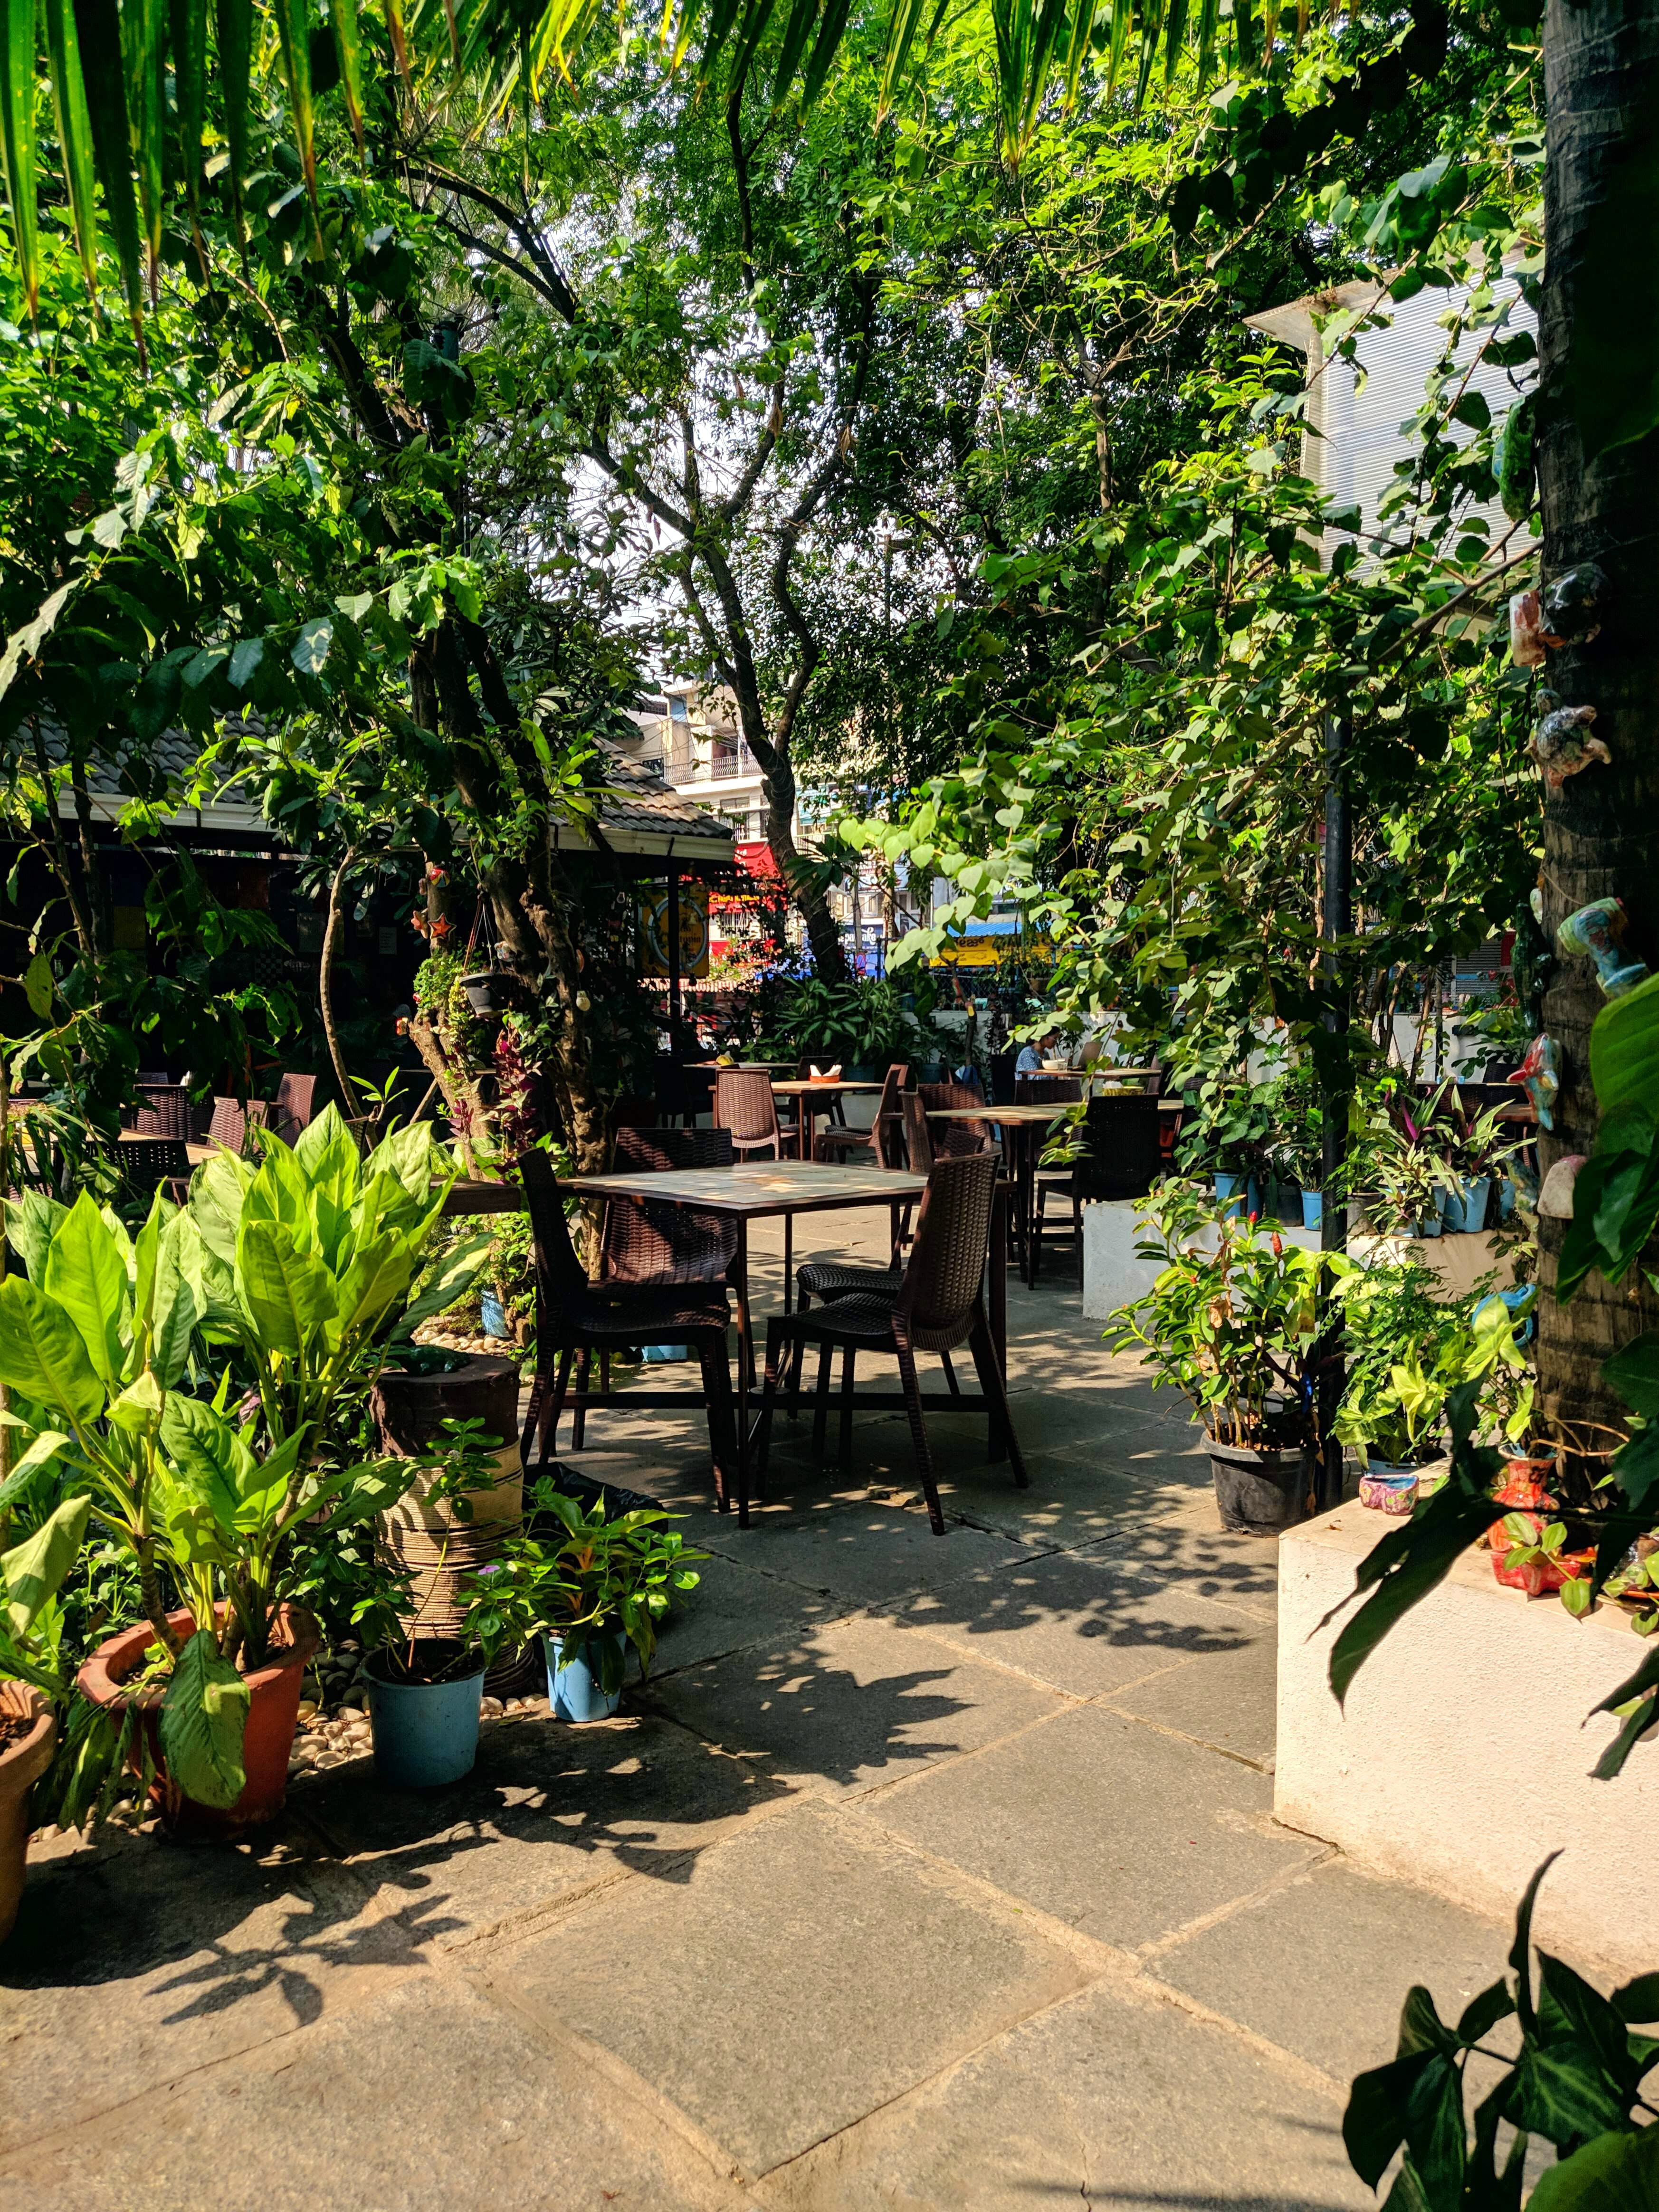 Your Perfect Weekend Spot Is Here With Good Food & Super Chill Vibes!